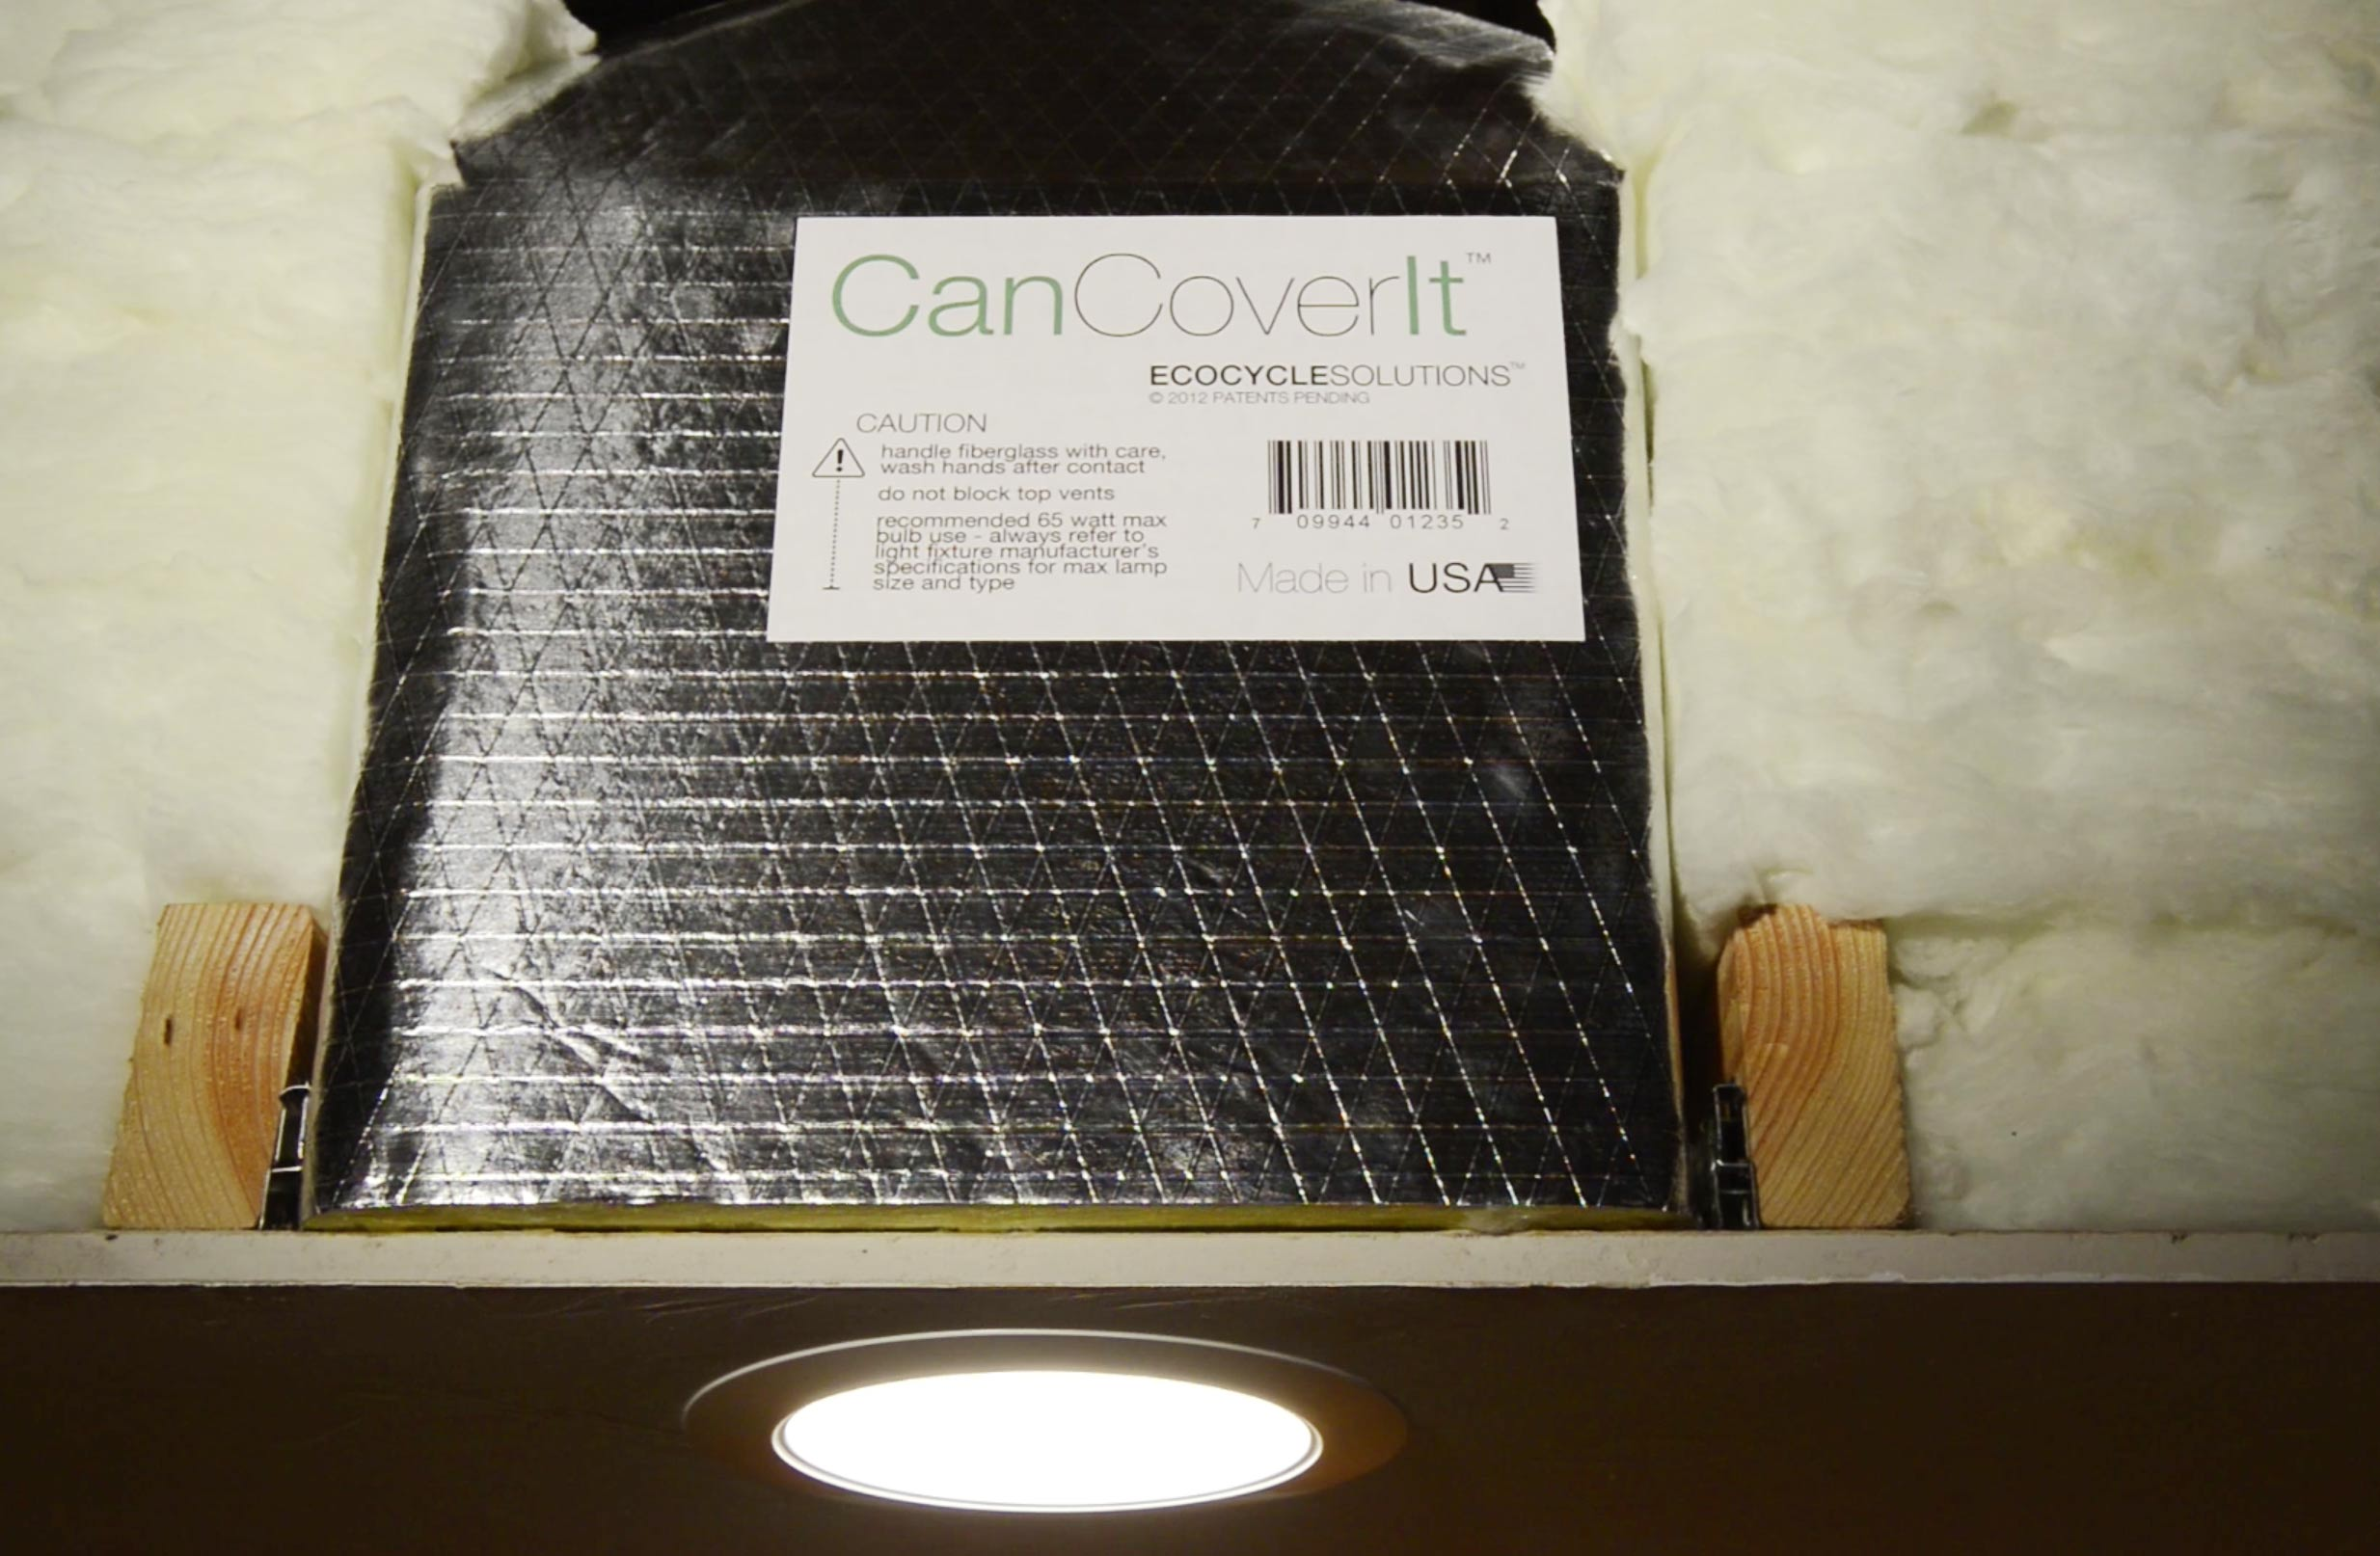 CanCoverIt solves all can-light energy transfer - reduces bills in half and improves comfort!